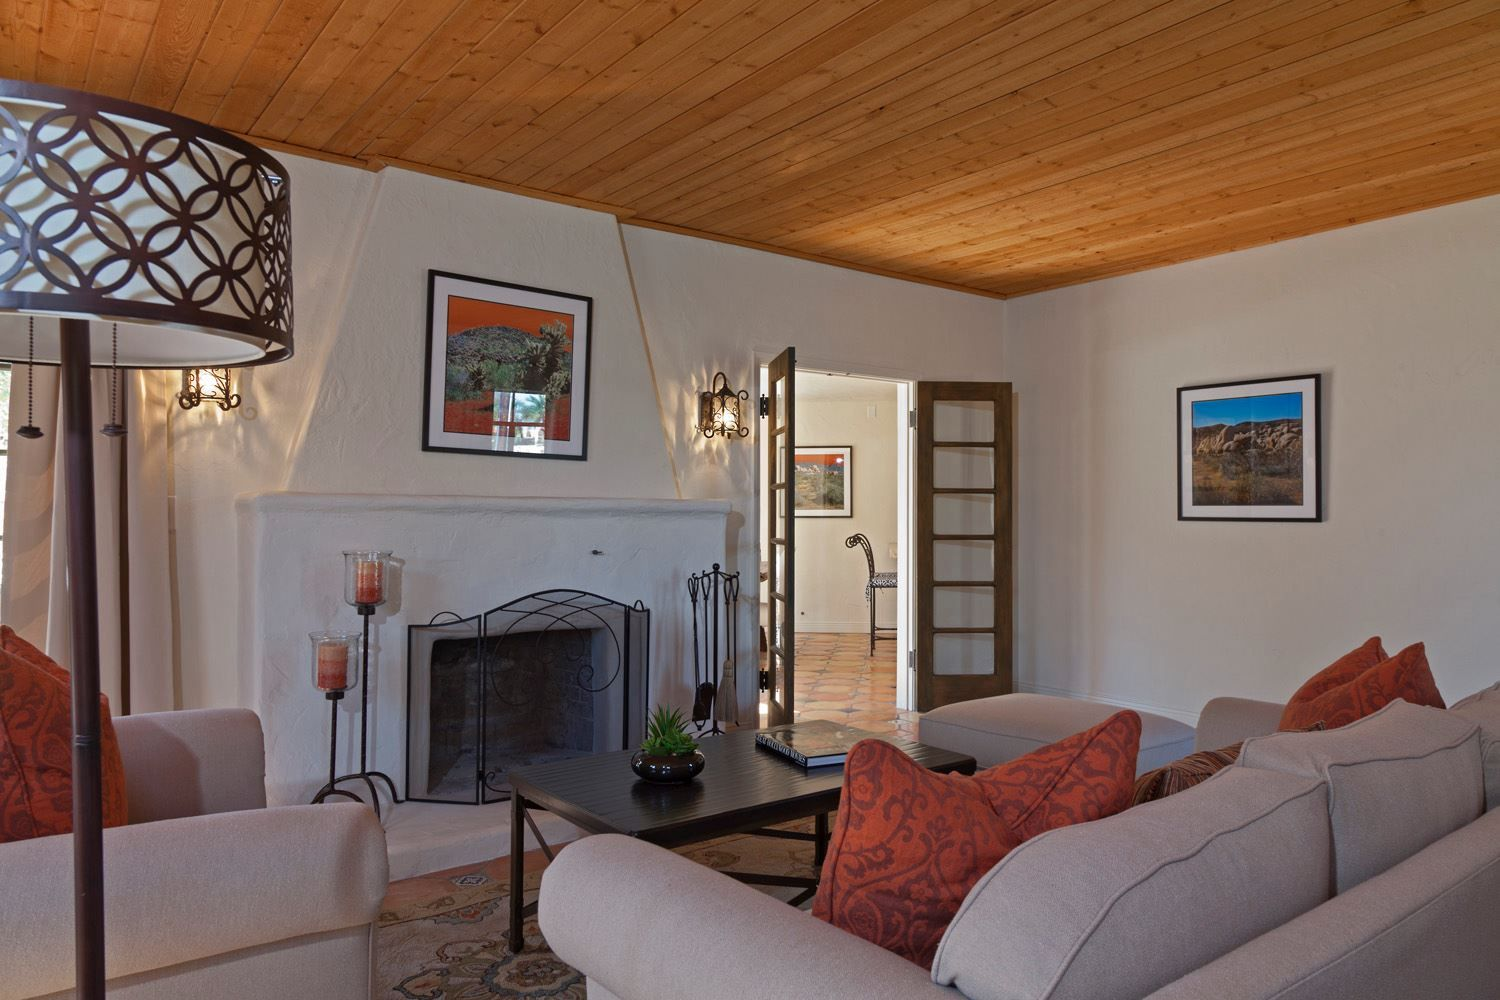 La Petite Cheminee Facebook That Ceiling And Fireplace From Hgtv S Desert Flippers Fb Page